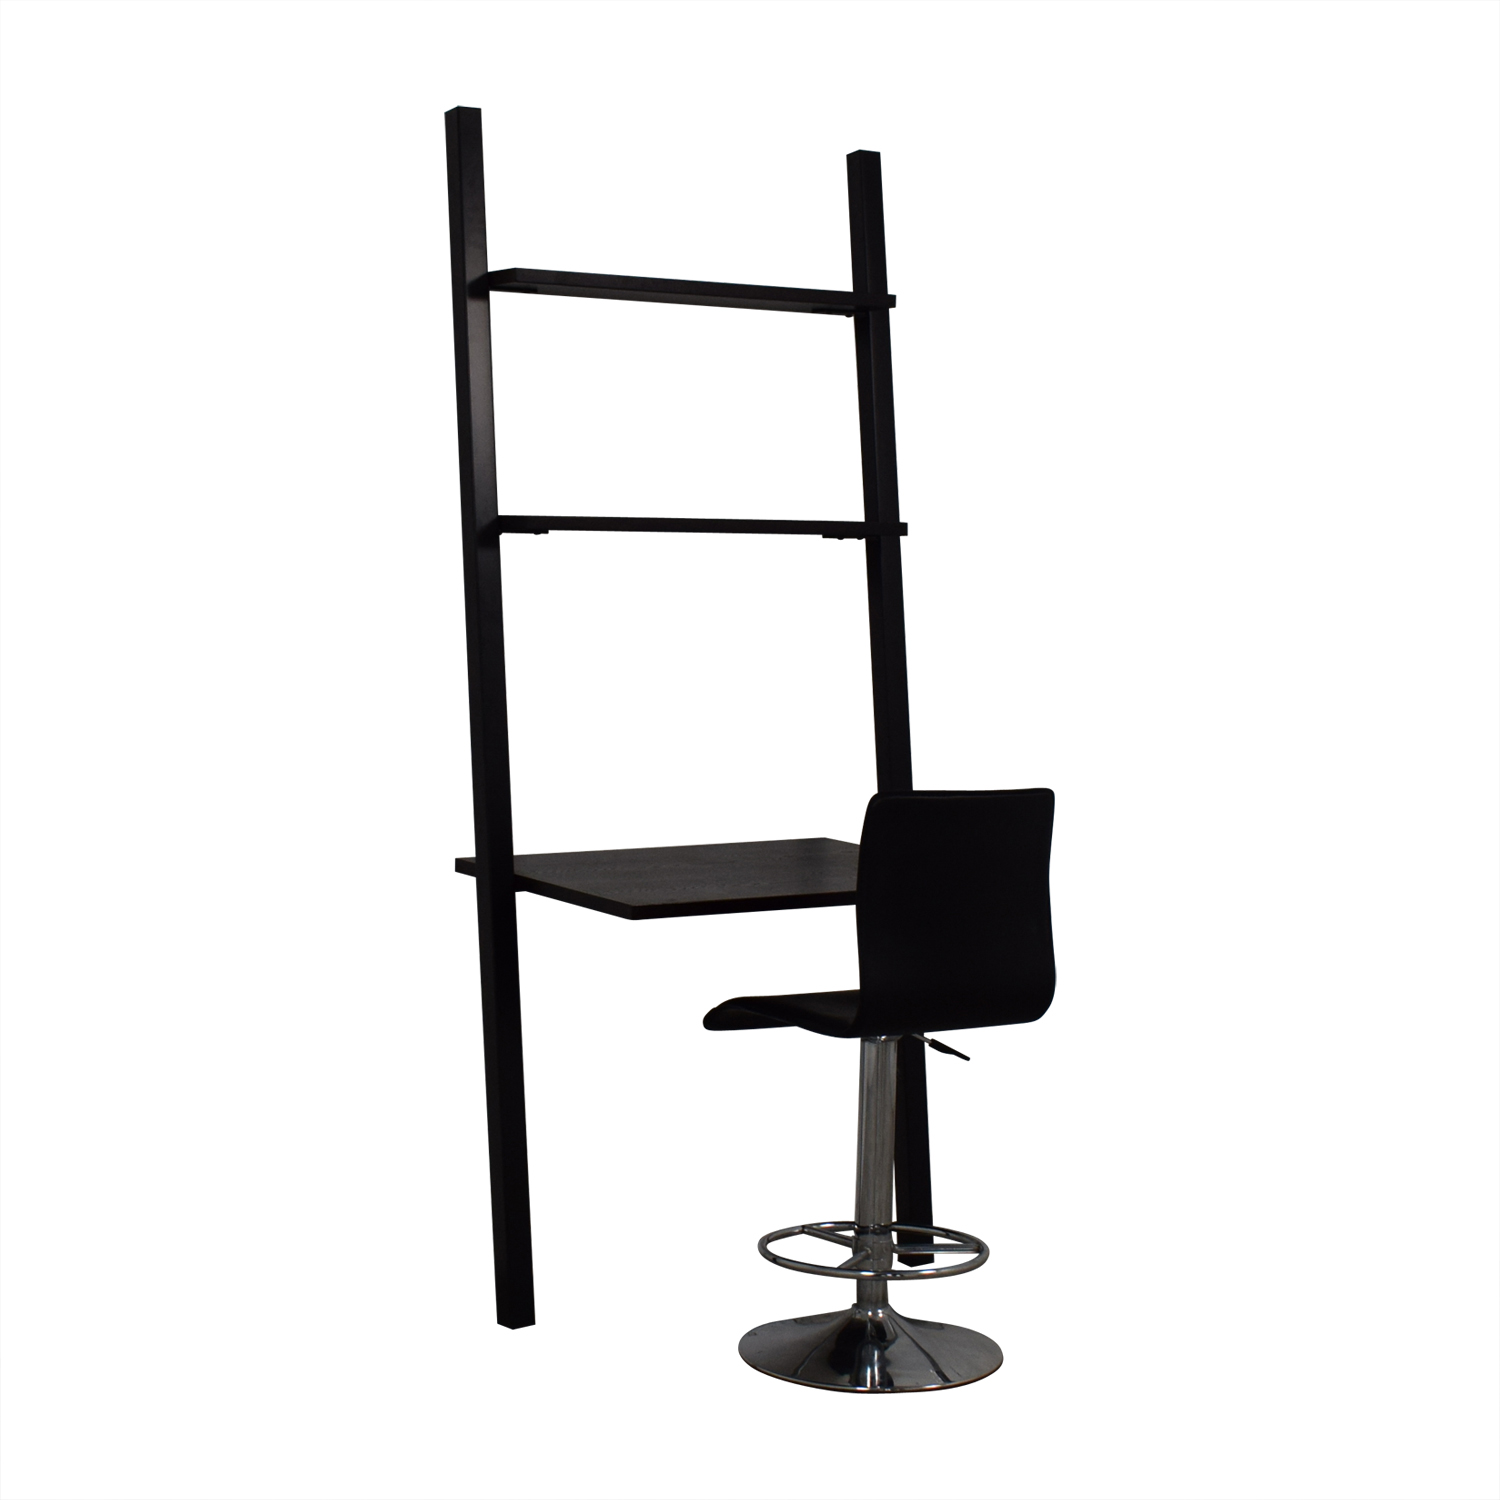 The Door Store The Door Store Ladder Shelf Desk with Modern Black Chair